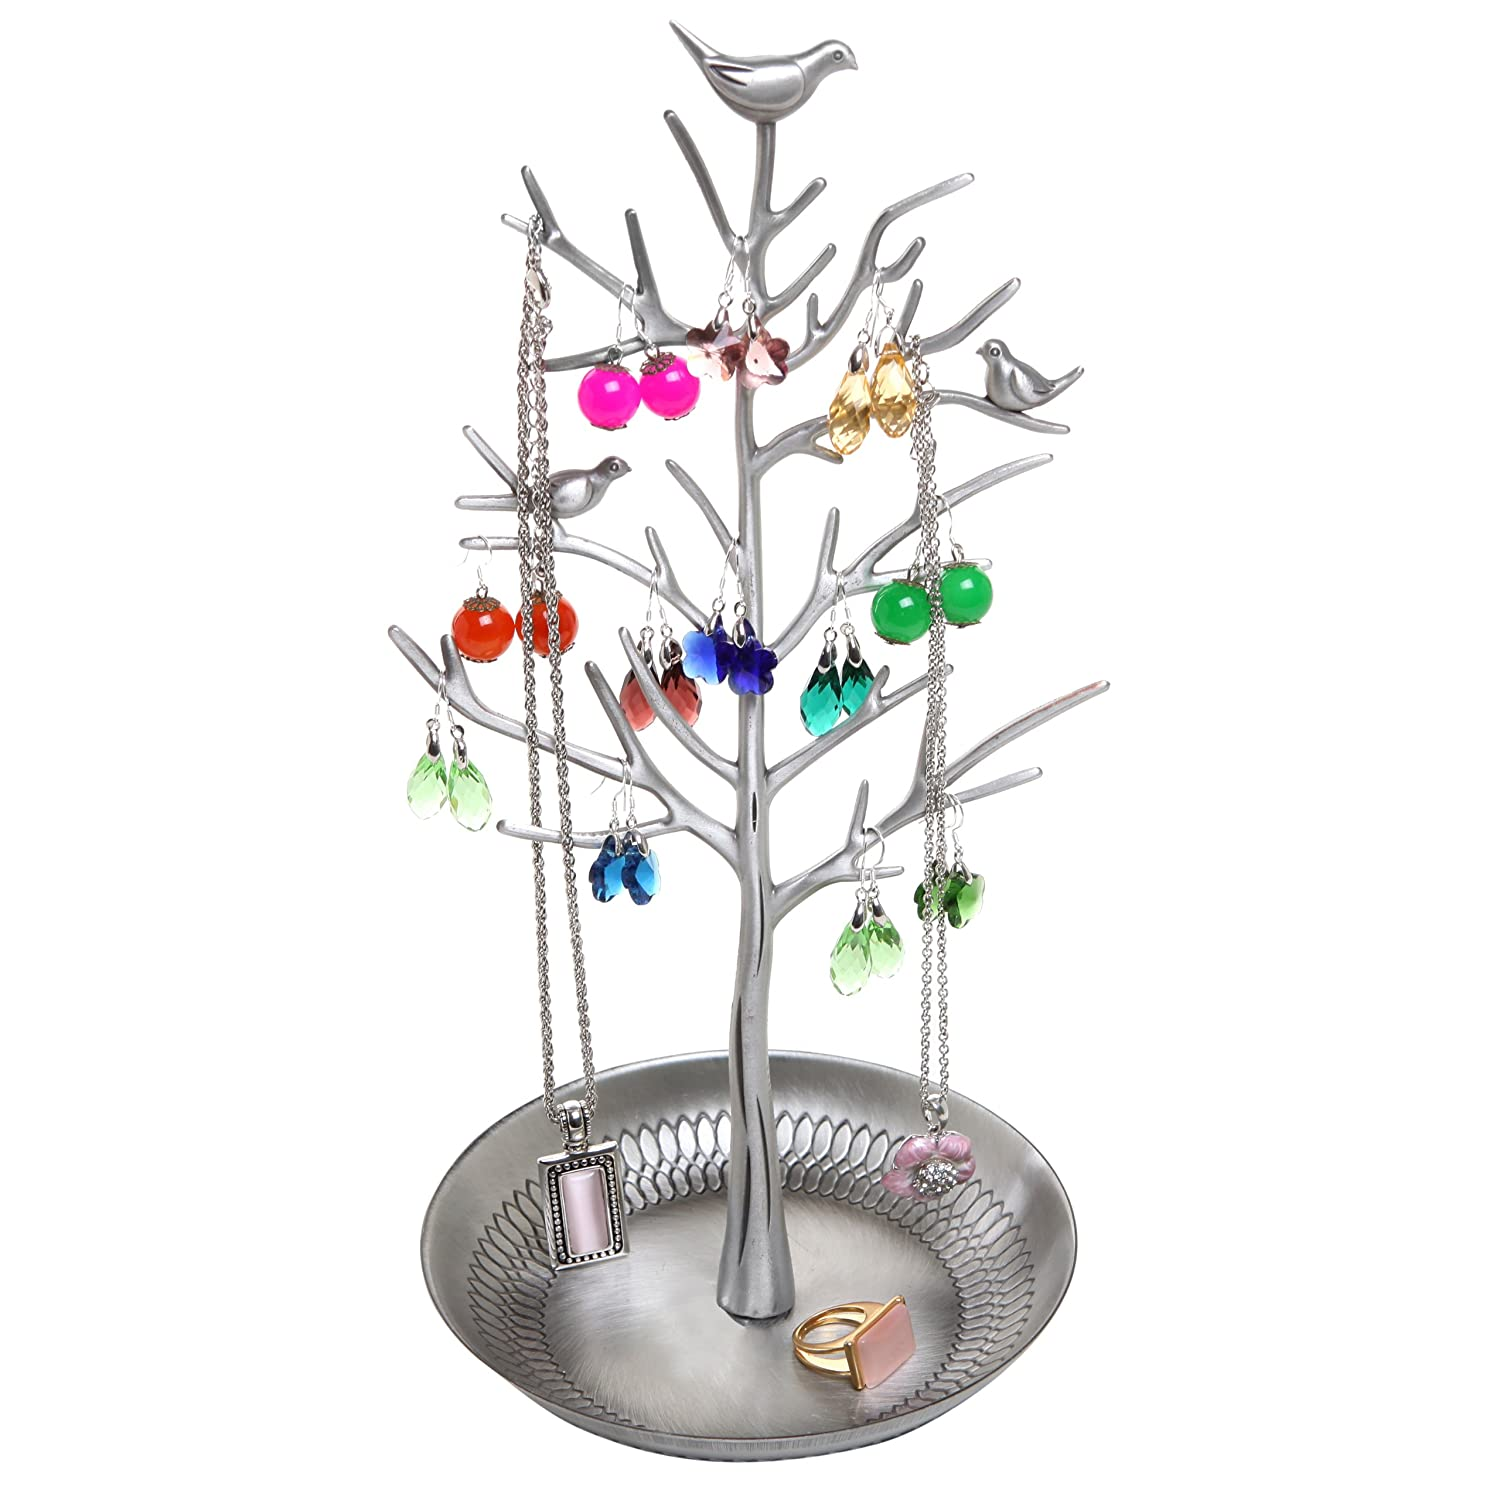 Pewter Metal Decorative Jewelry Tree / Necklace Hanger / Earring Organizer by MyGift® TB-J0099PEW